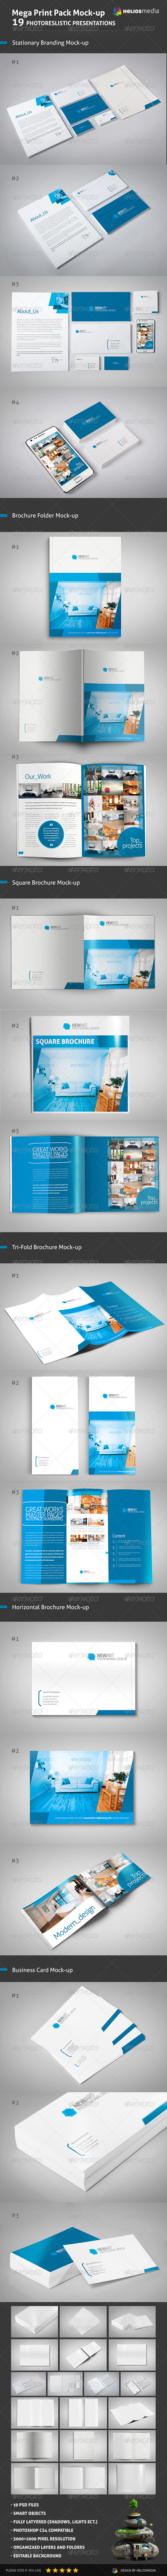 Dl Graphics Designs & Templates from GraphicRiver Page 17